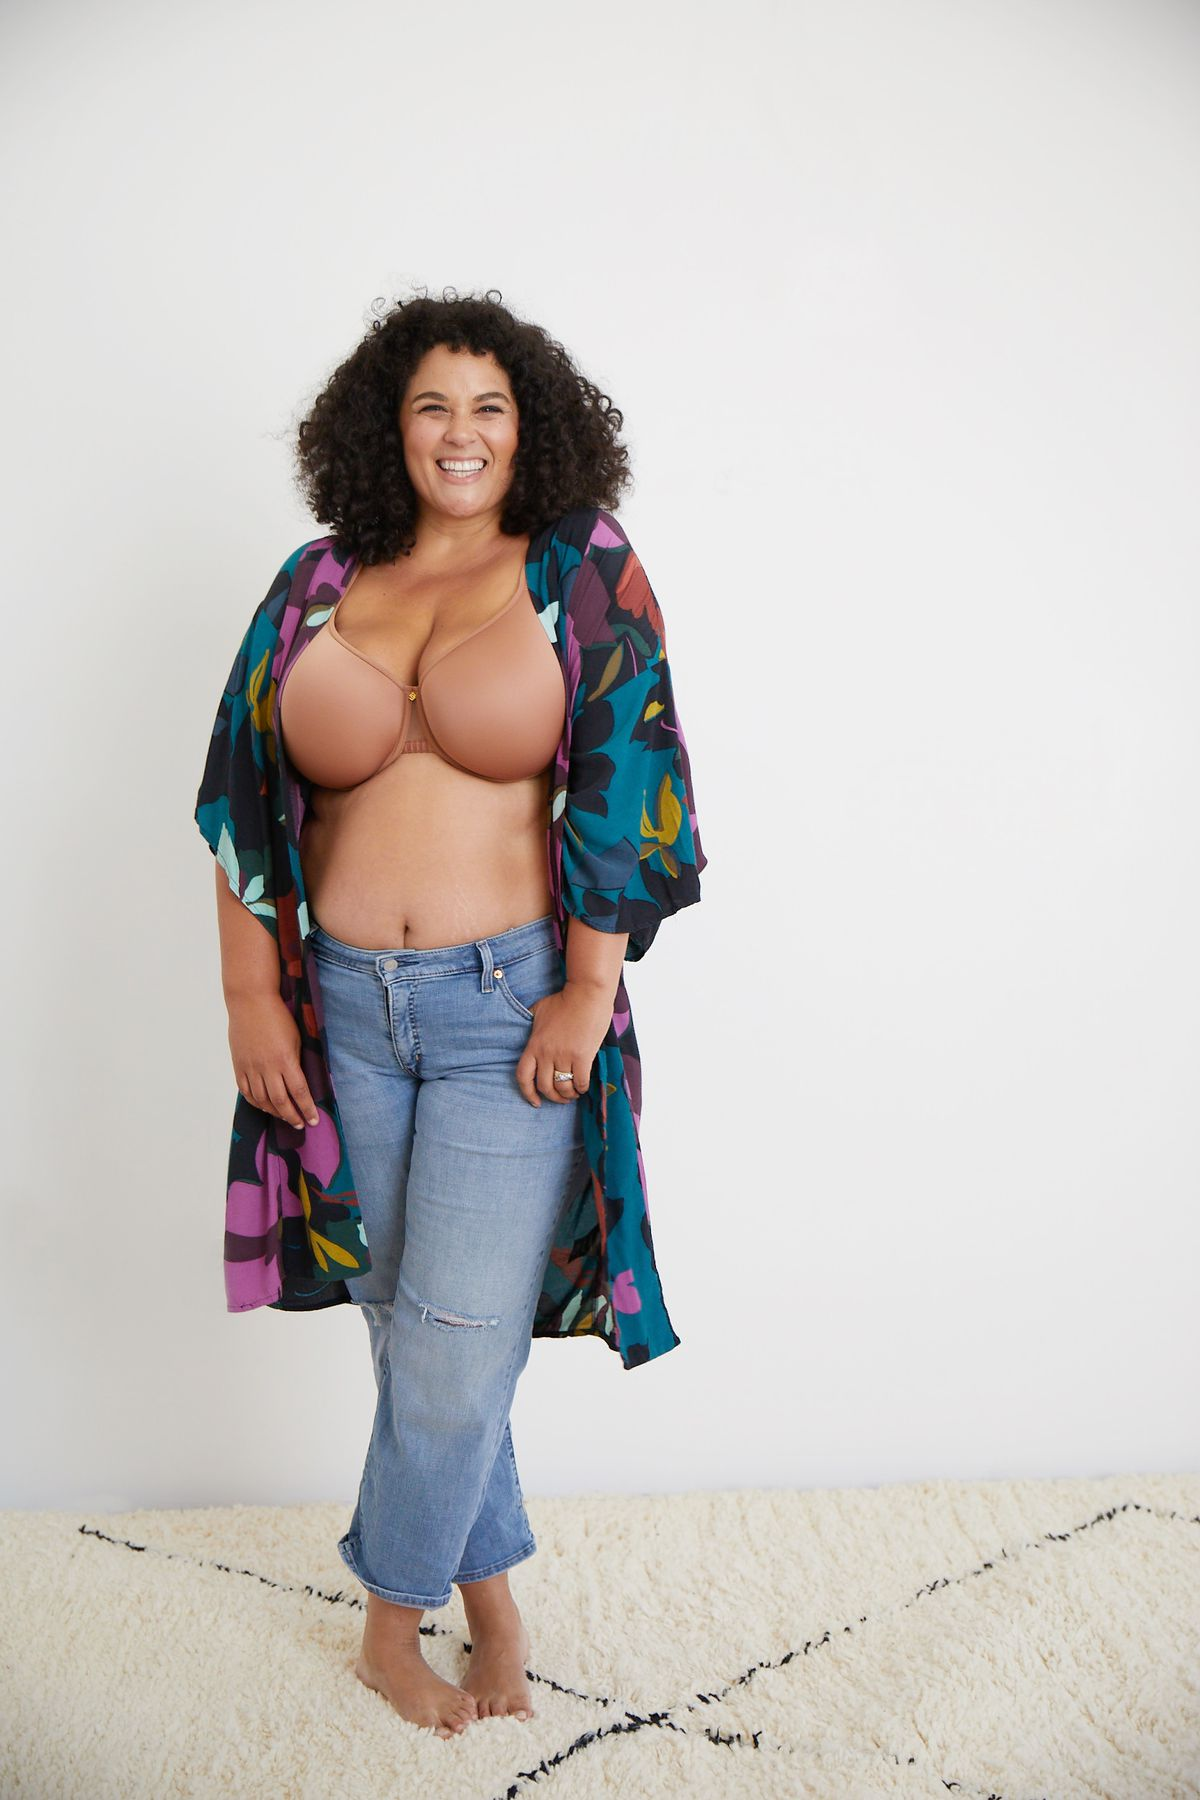 ThirdLove s Bra Sizes Now Go Up to 38H and 48D - Racked 8ed13e570